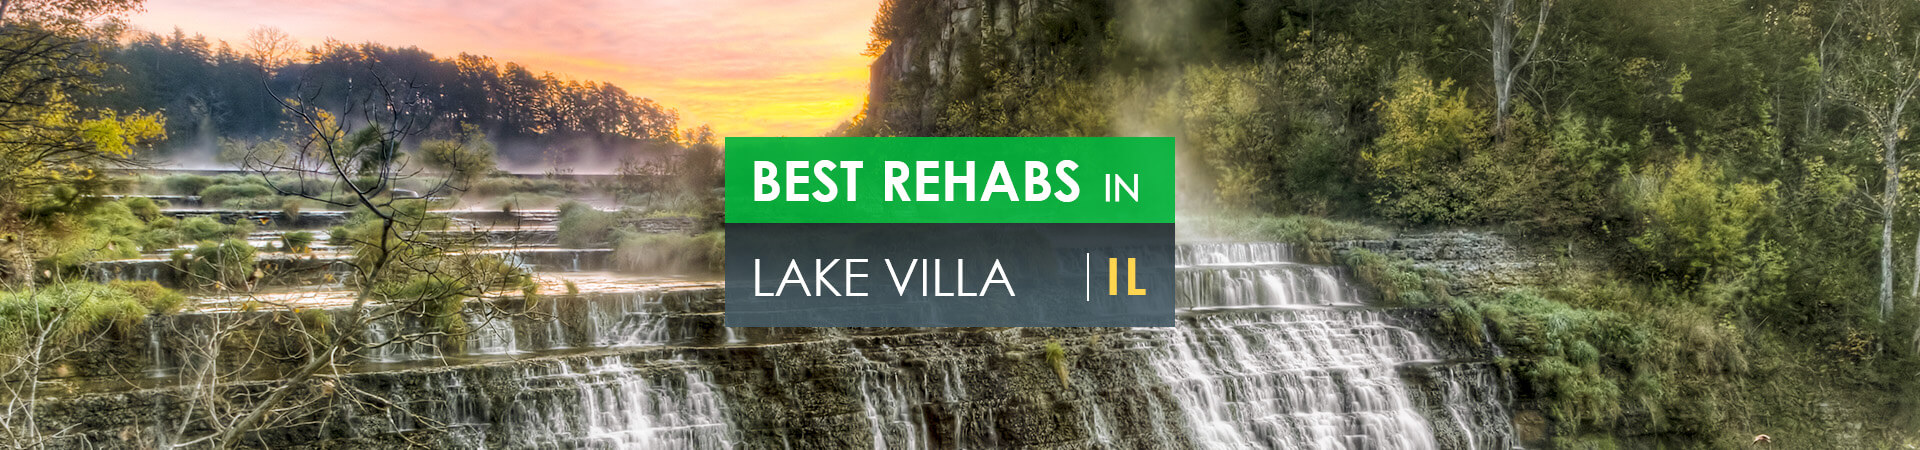 Best rehabs in Lake Villa, IL